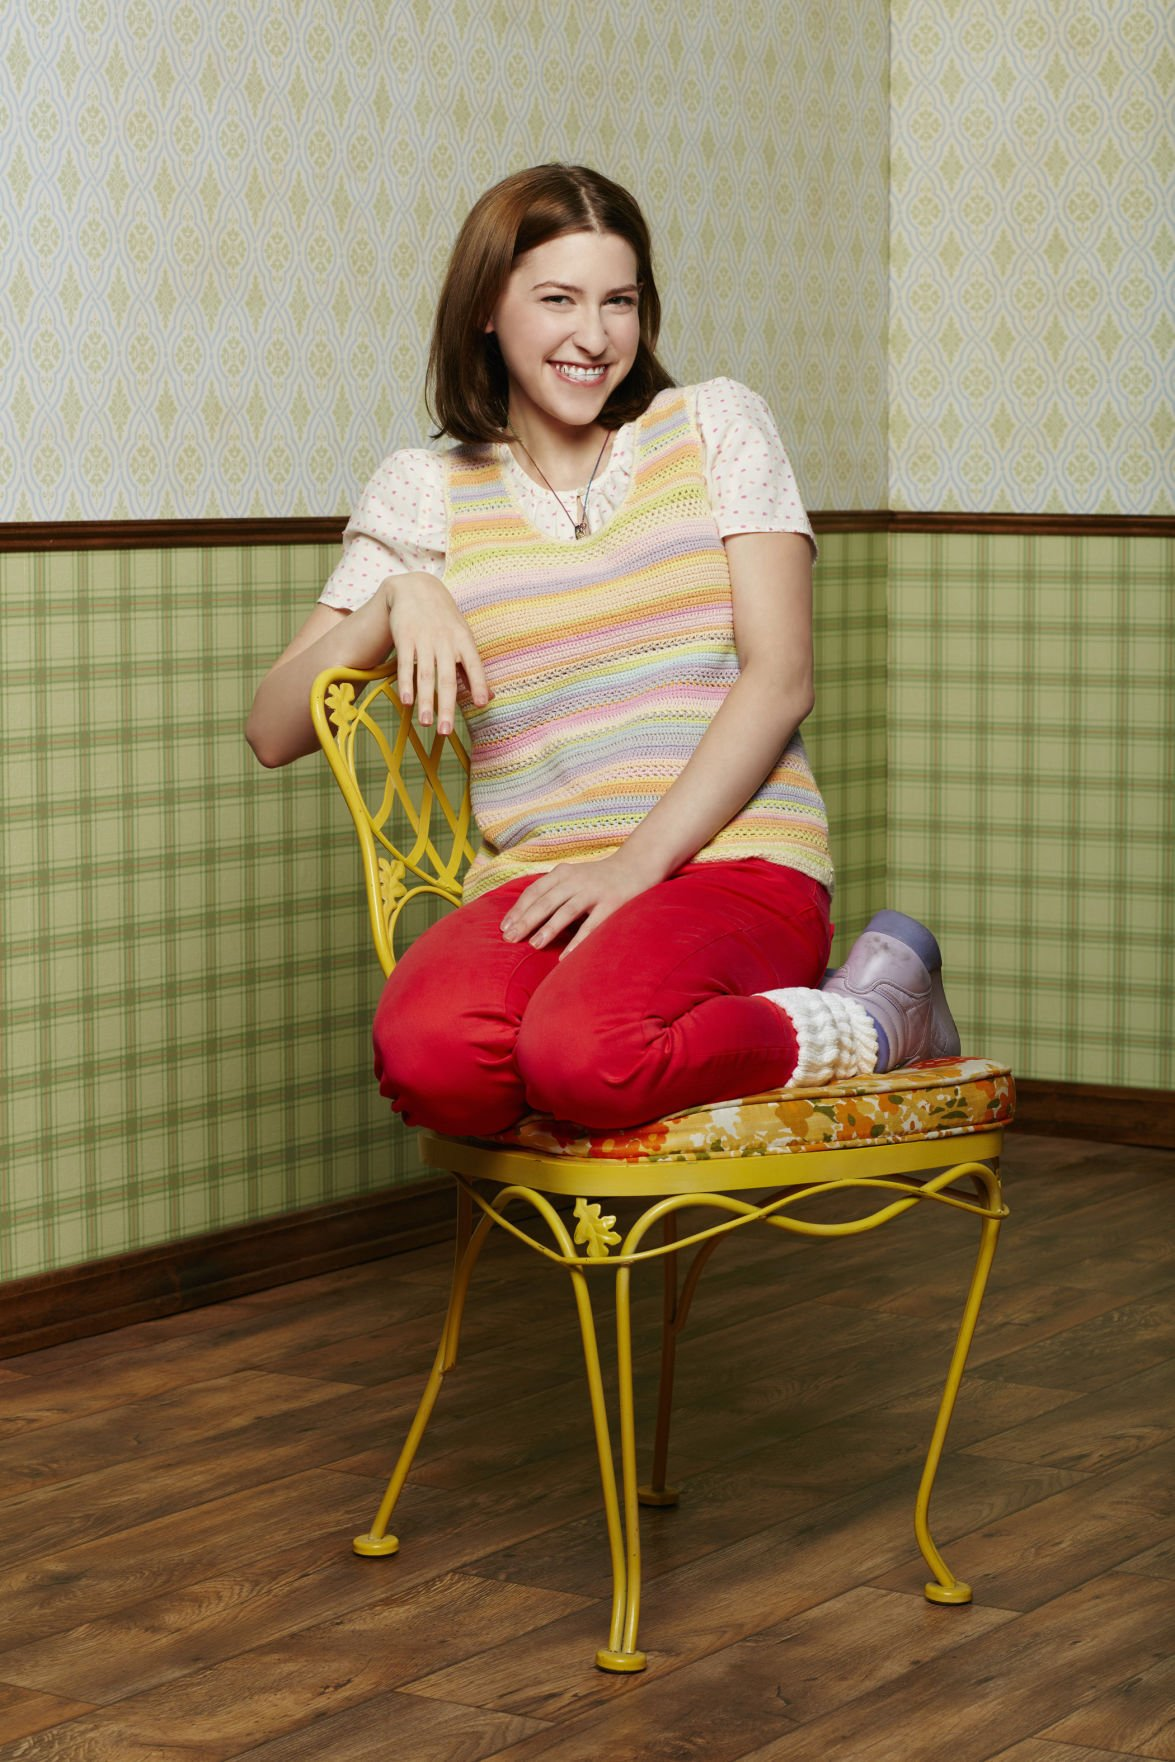 Pics photos eden sher images - Life In The Middle Is Great Say Stars Neil Flynn And Eden Sher